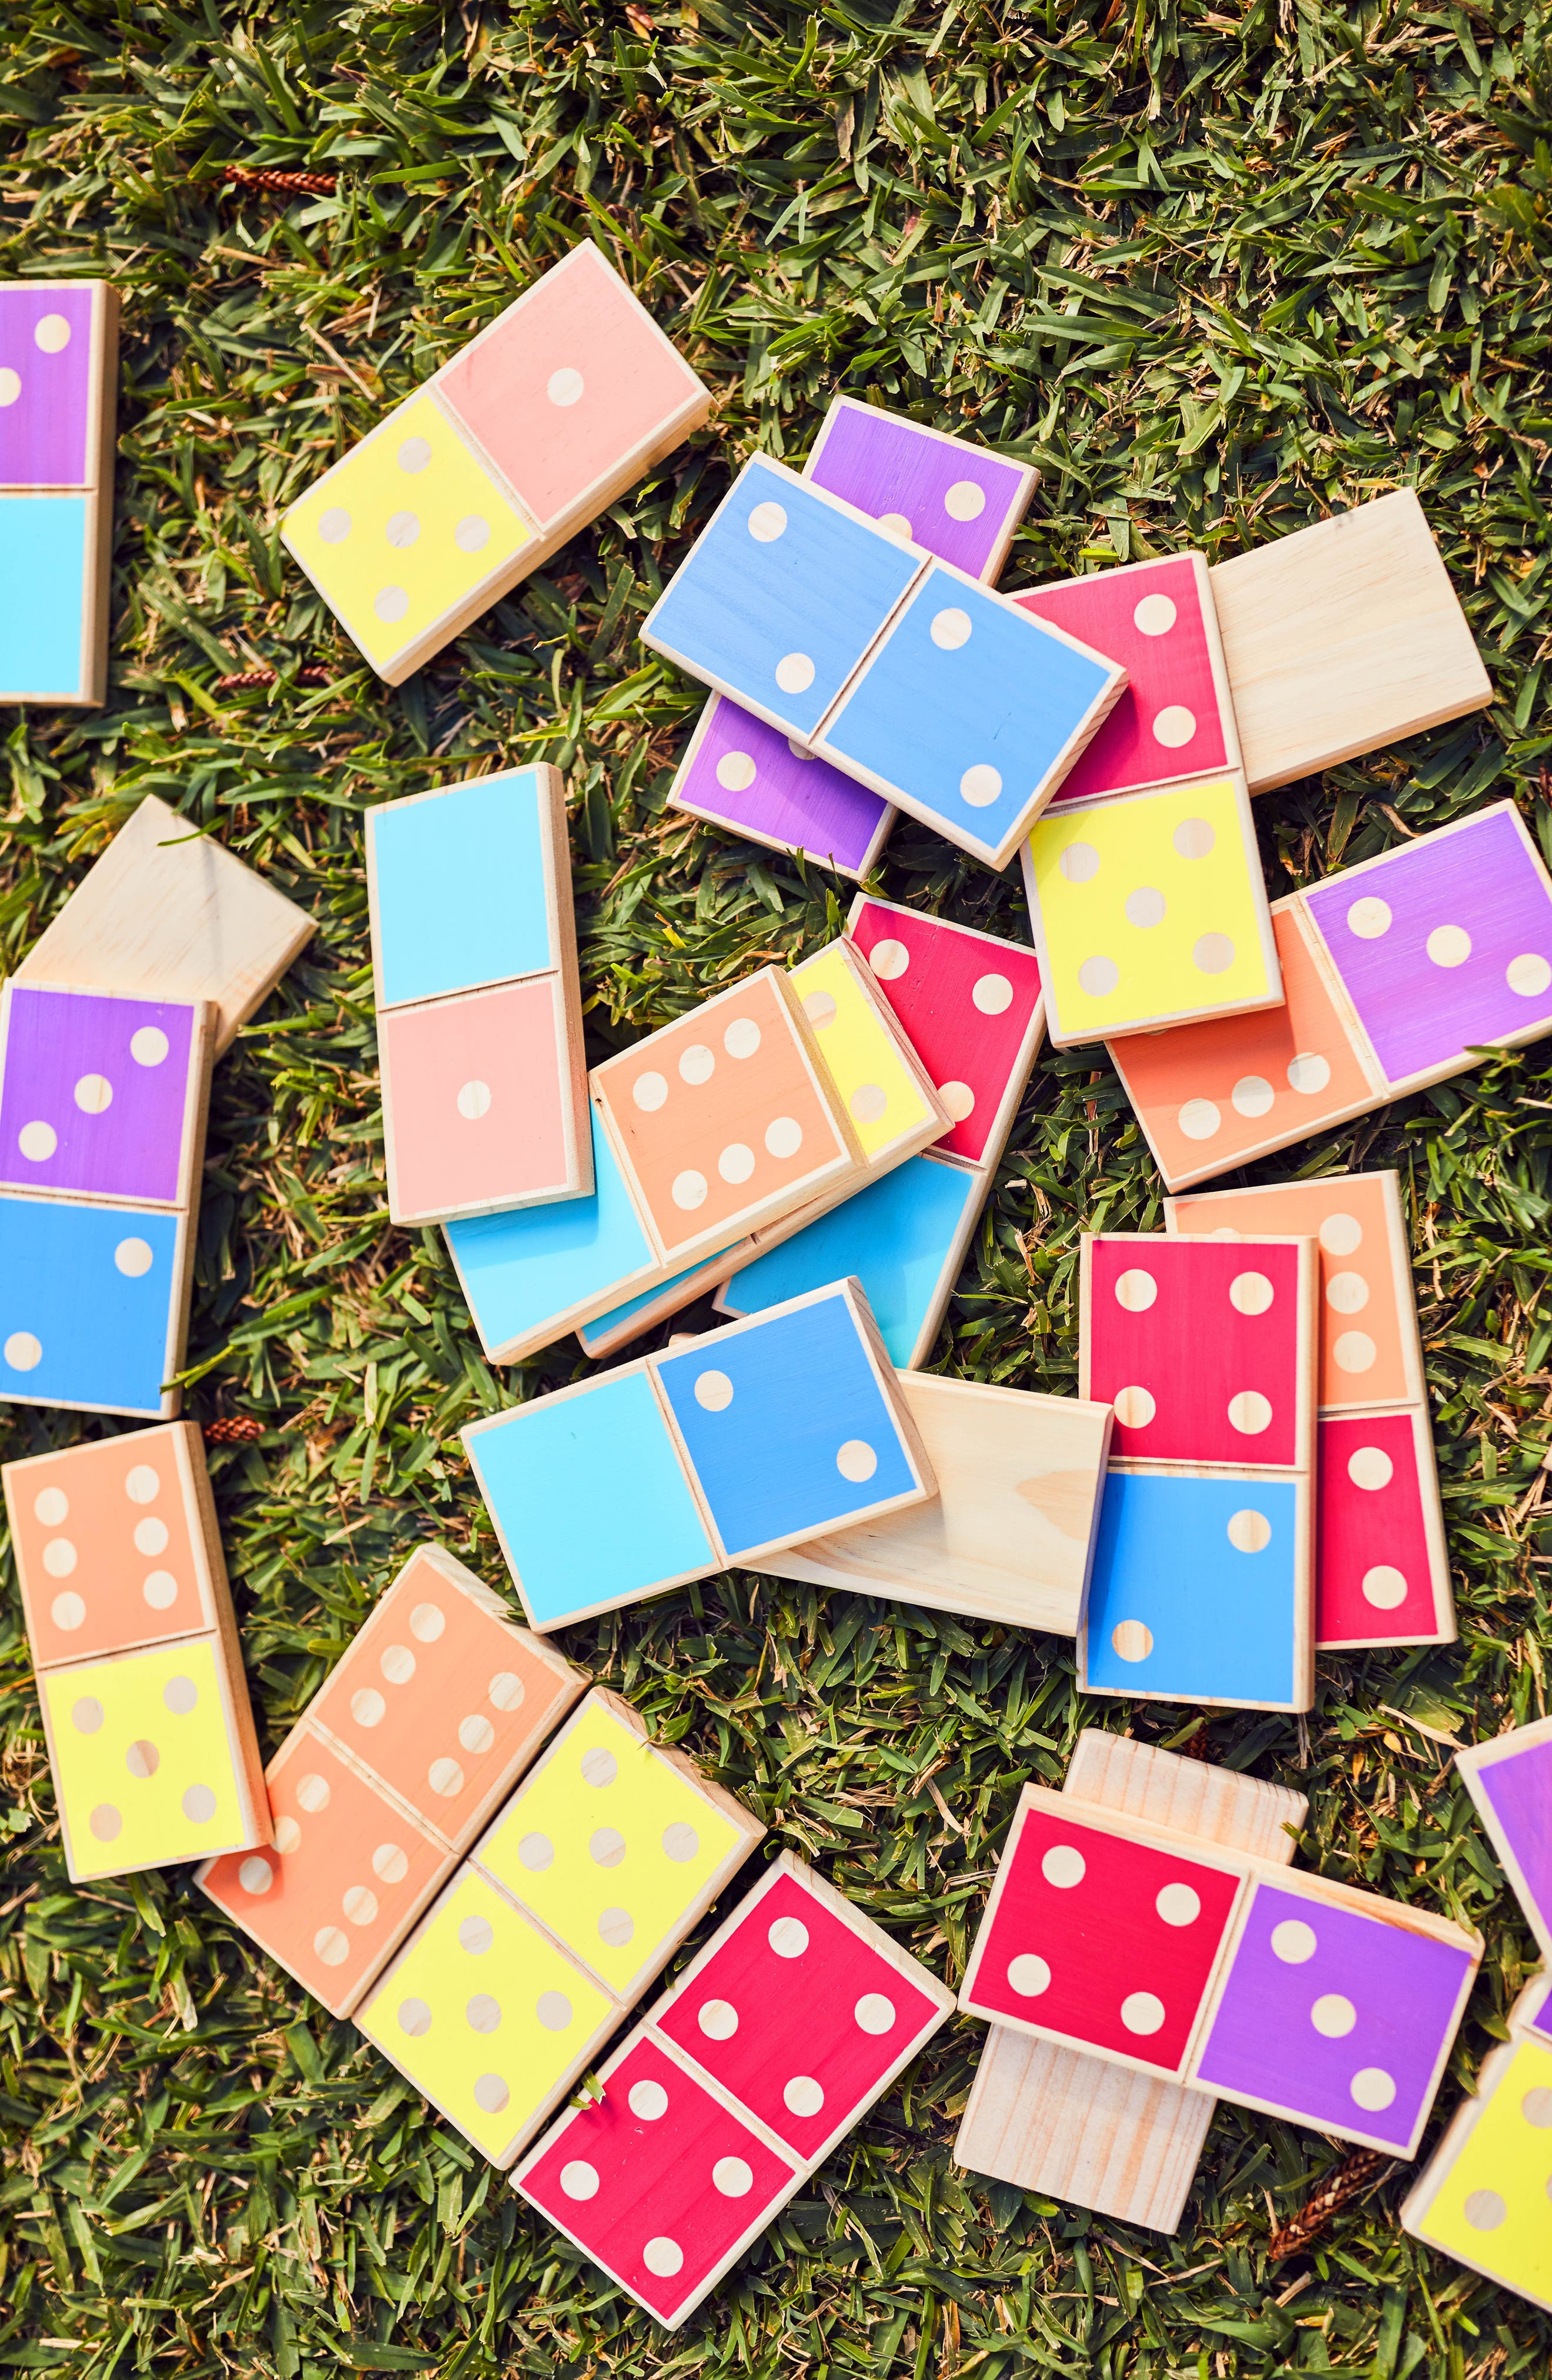 28-Piece Giant Dominos Game,                             Alternate thumbnail 2, color,                             Multi